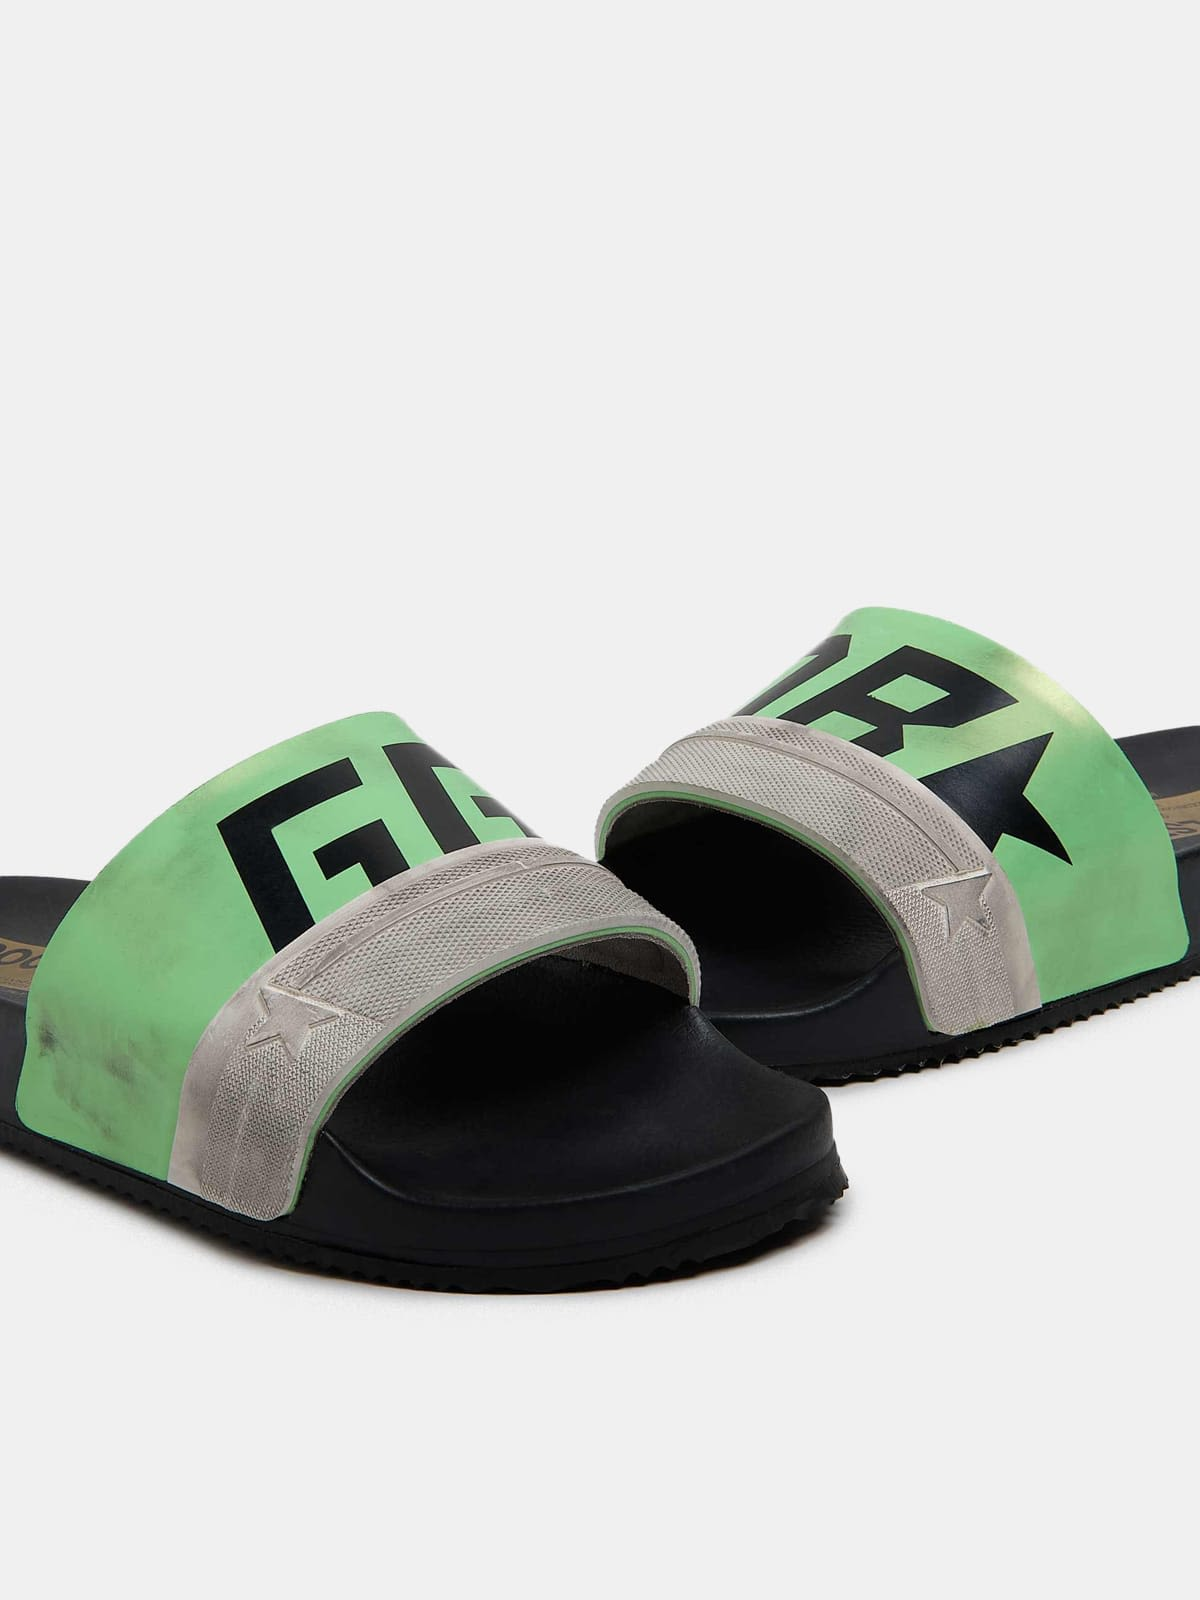 Black Poolstars for men with green strap and logo